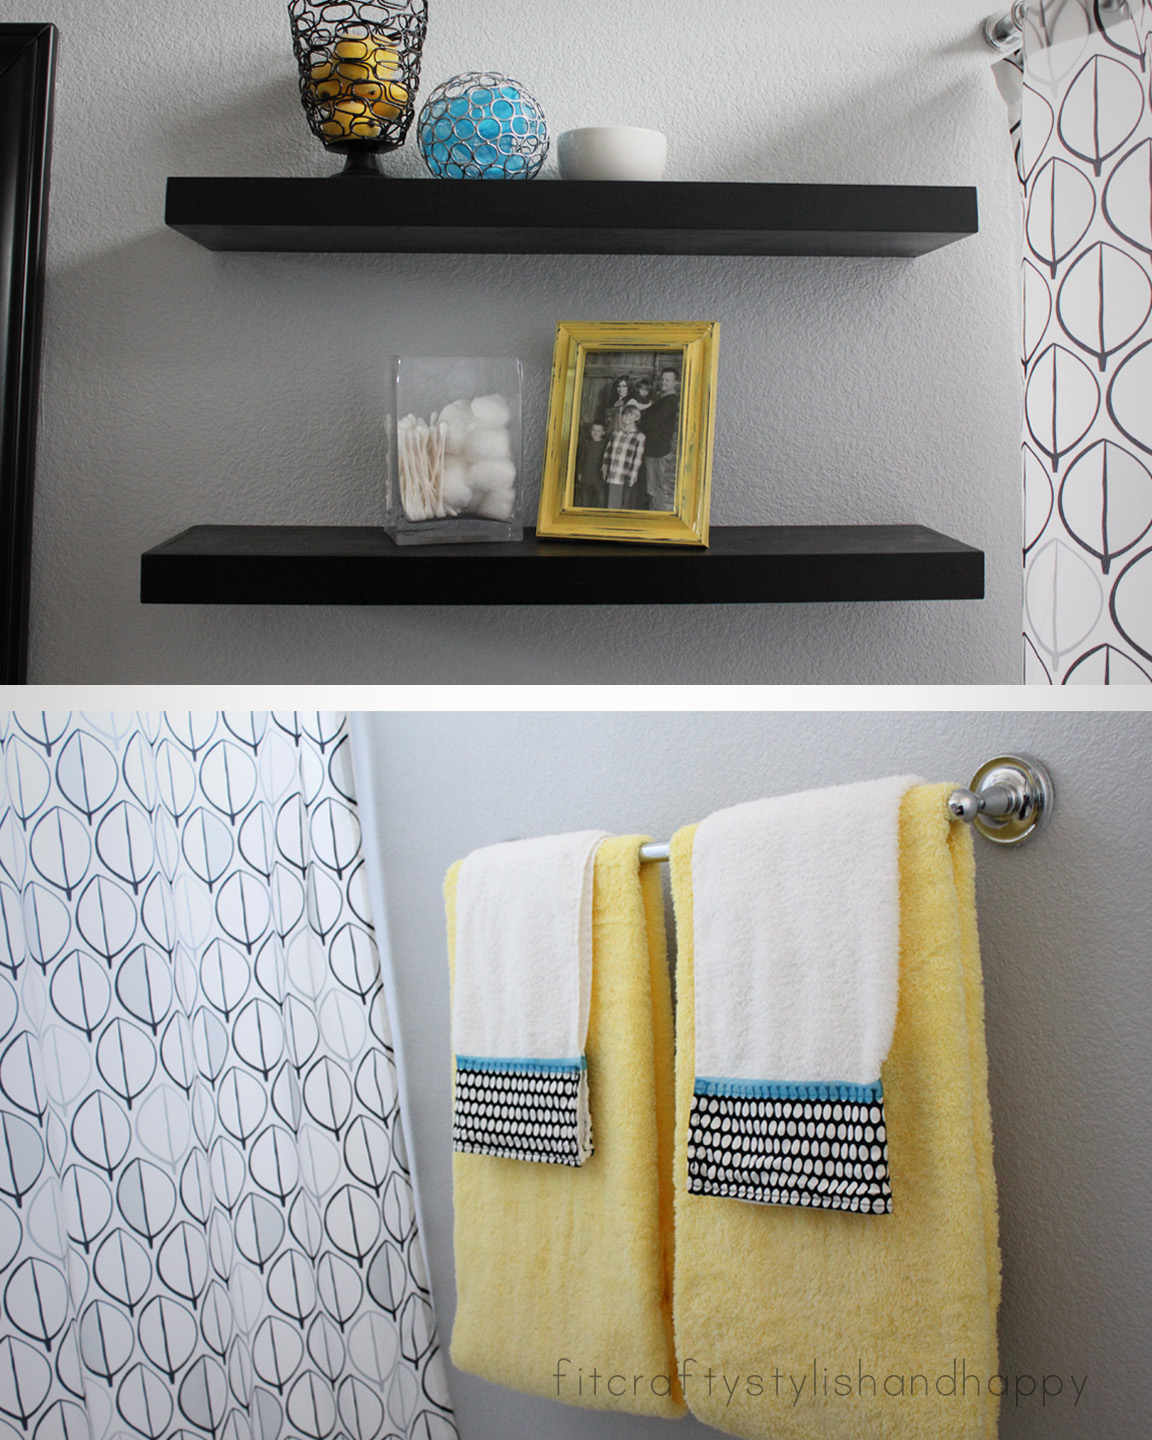 Bathroom Art Grey: Fit, Crafty, Stylish And Happy: Guest Bathroom Makeover